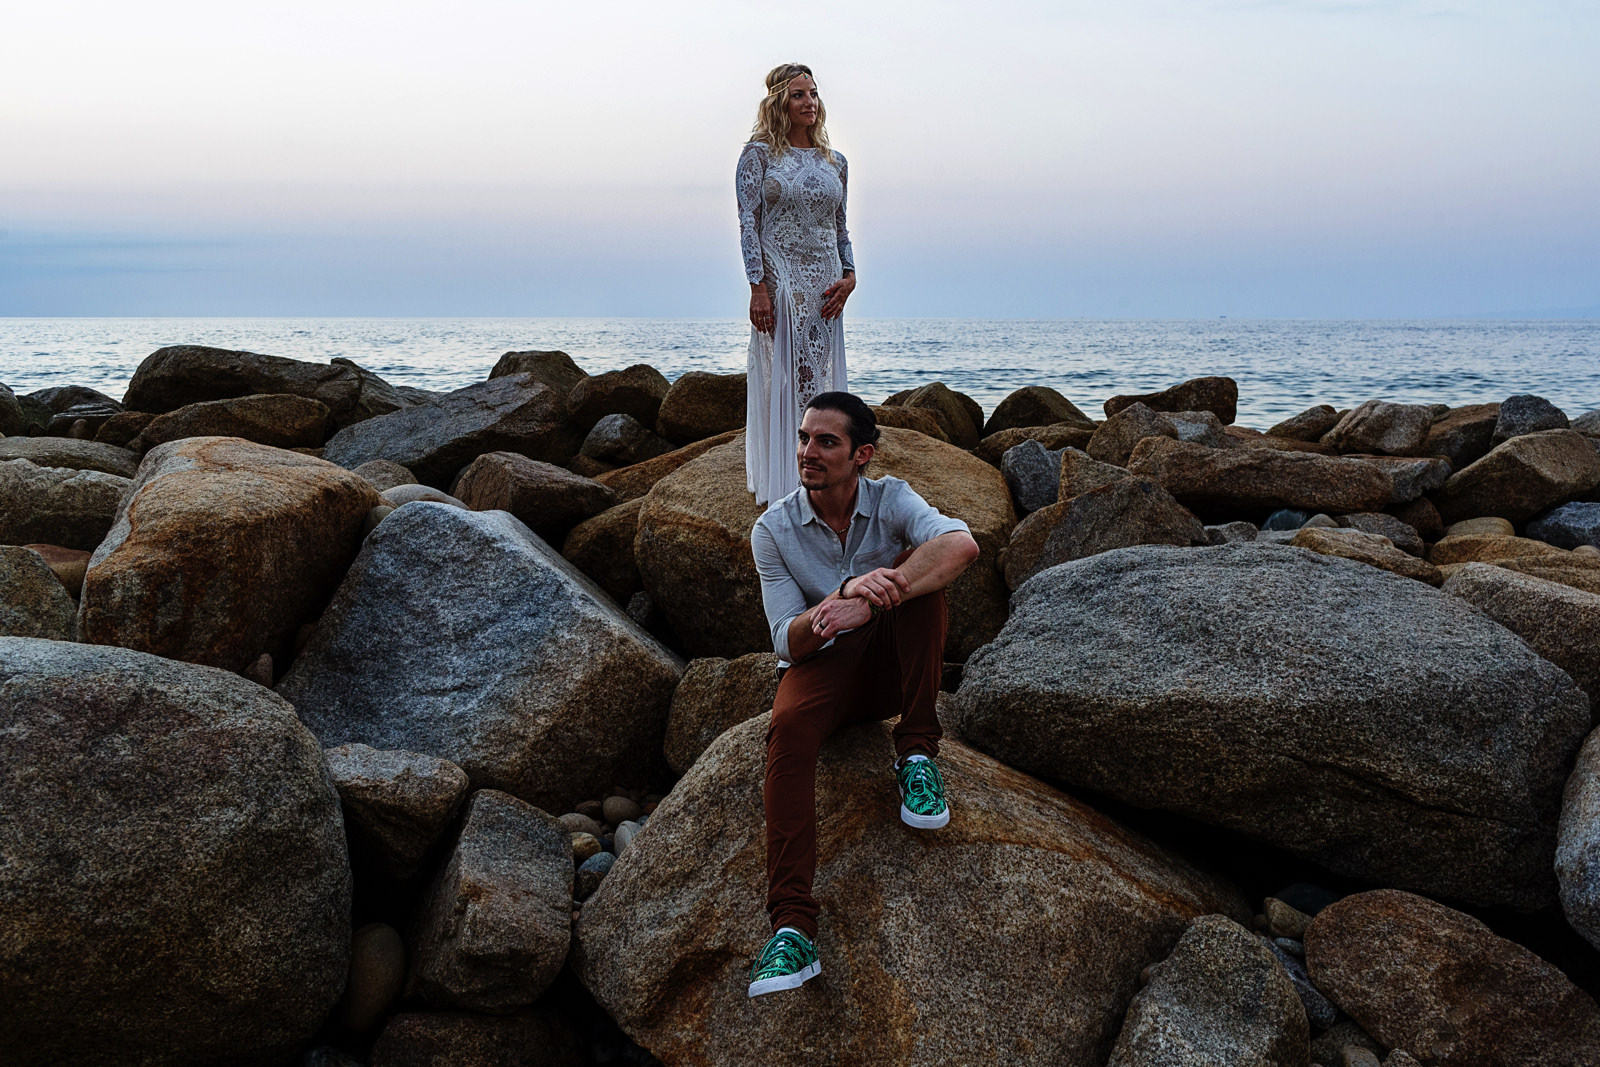 Wedding couple portrait, bride standing in the rocks while the groom is sitting on the rocks with the Mexican pacific ocean in the background